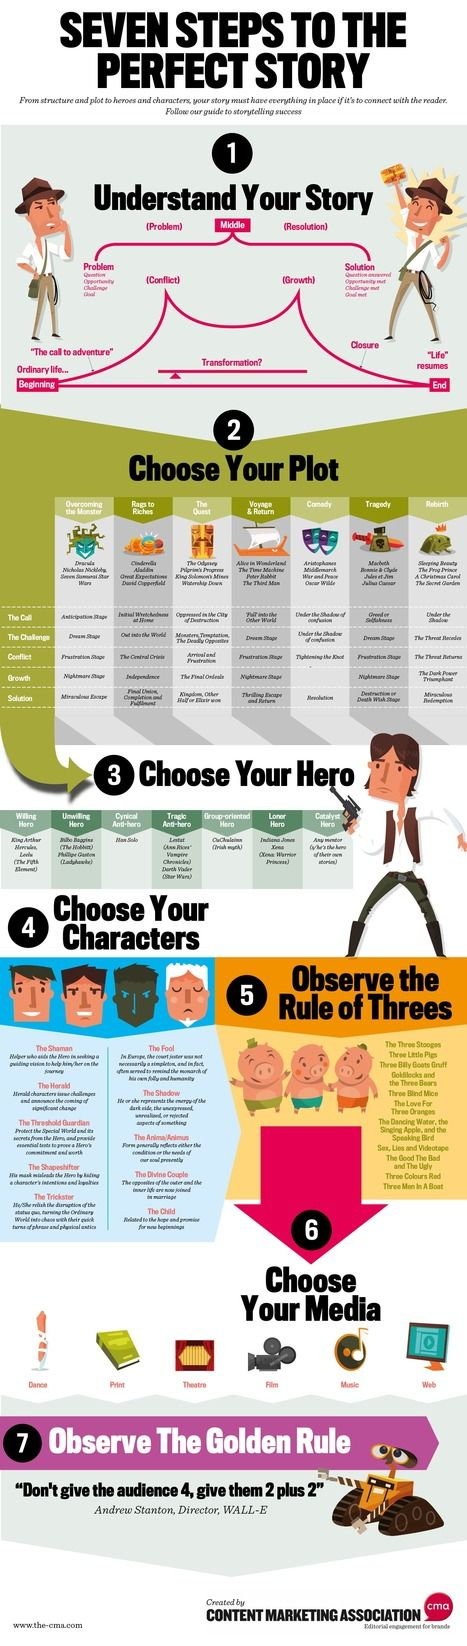 SEVEN STEPS TO THE PERFECT STORY [Fun Infographic] Writing Rightly | Writing Rightly | Scoop.it